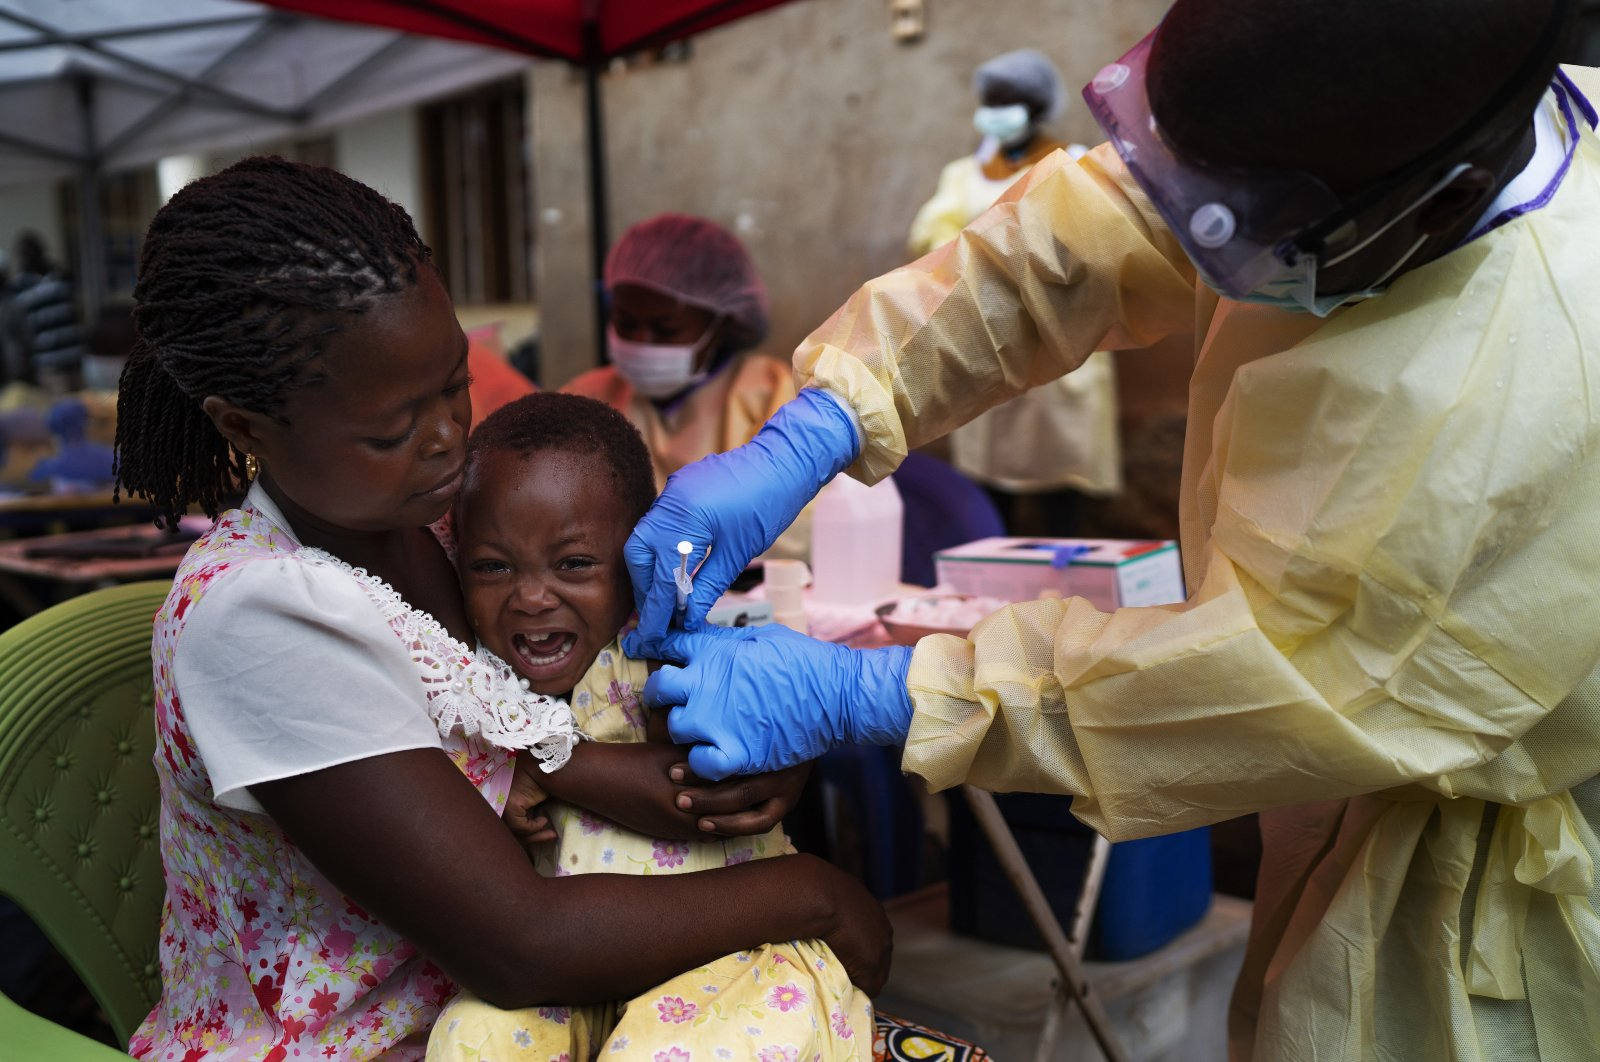 A child is vaccinated against Ebola, Beni, Congo, July 13, 2019. (AP Photo)